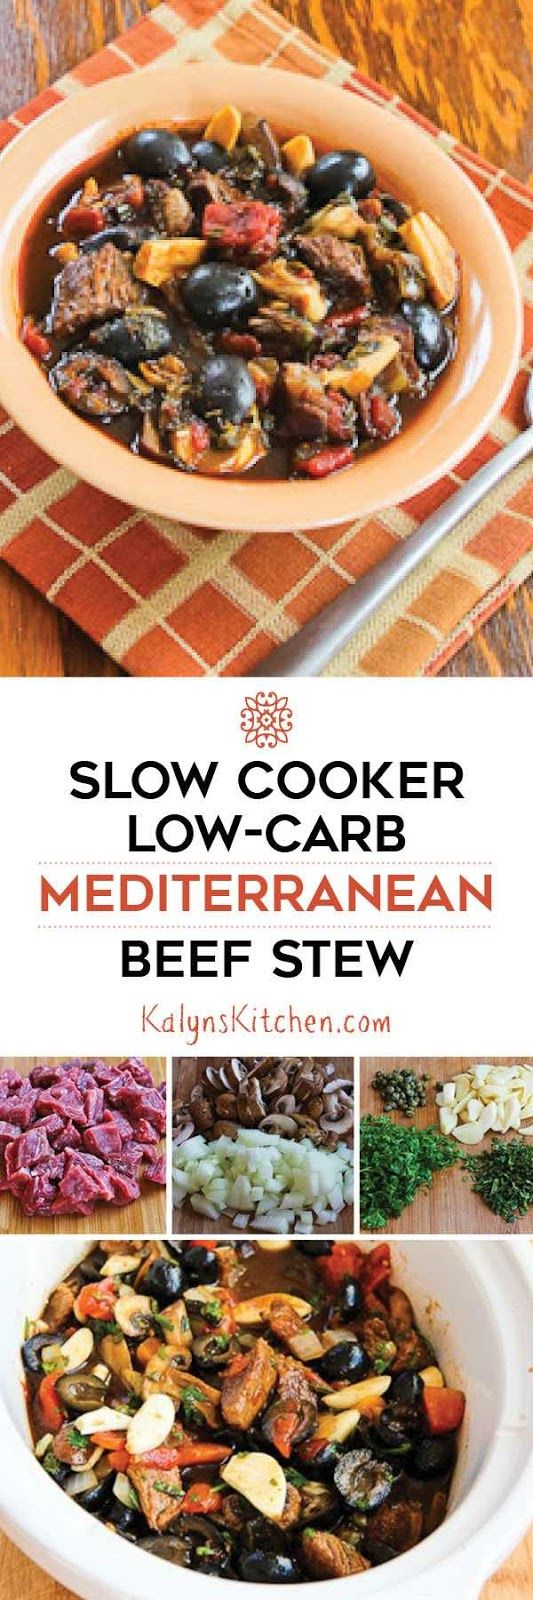 Slow Cooker Mediterranean Beef Stew with Rosemary and Balsamic Vinegar is an easy delicious meal from the slow cooker. This can cook all day while you're at work and it's Low-Carb, Keto, Low-Glycemic, Gluten-Free, Paleo, Whole 30, and South Beach Diet Phase One. [found on KalynsKitchen.com]